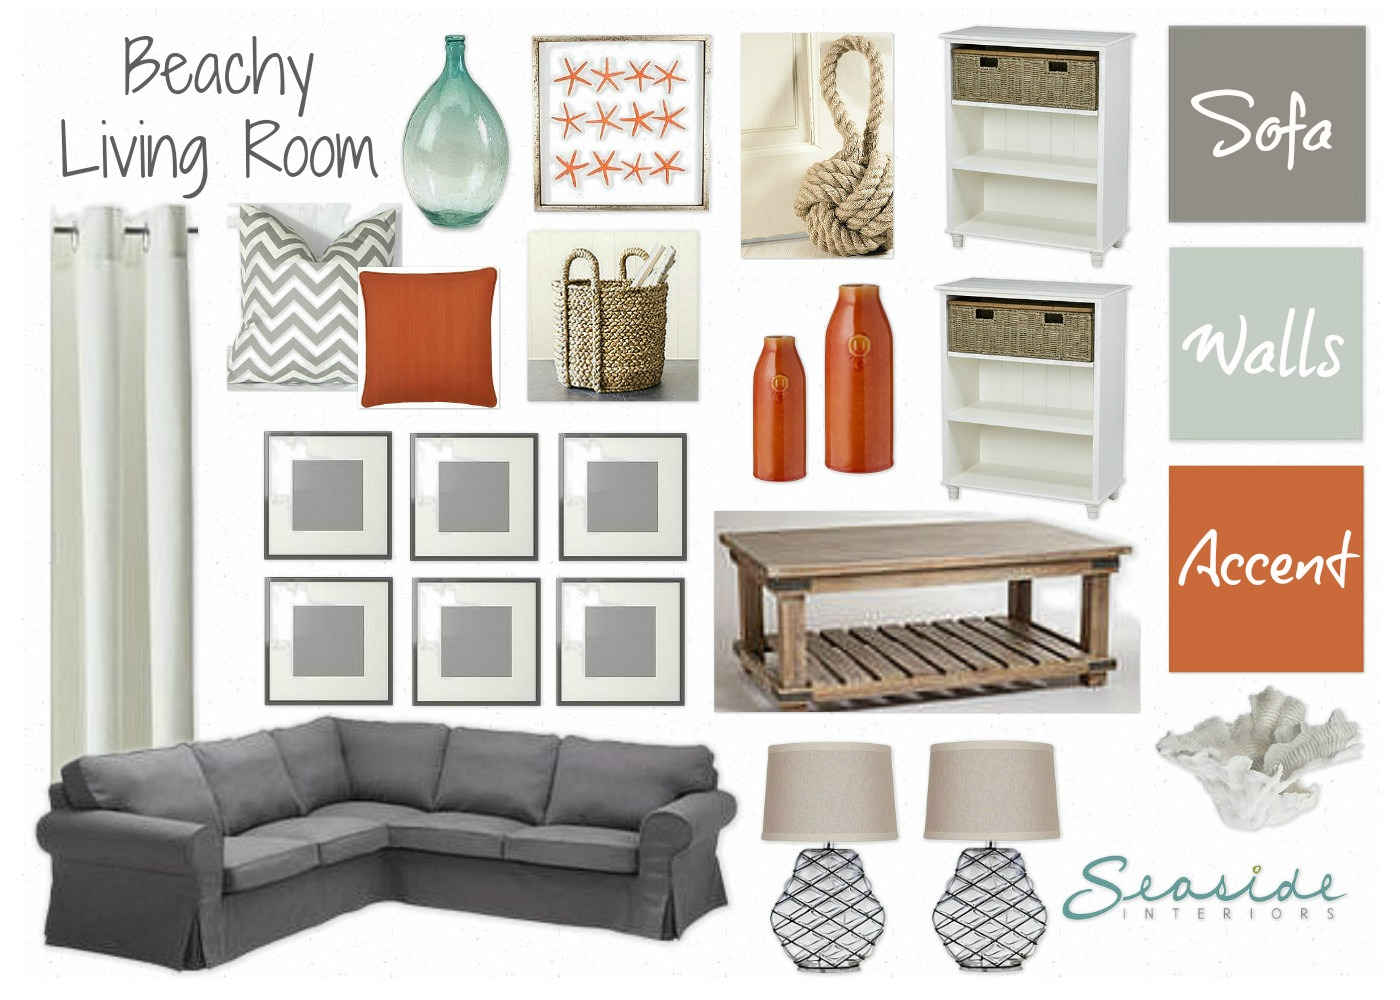 Seaside interiors beachy living room with grays and orange for Sofa jugendzimmer